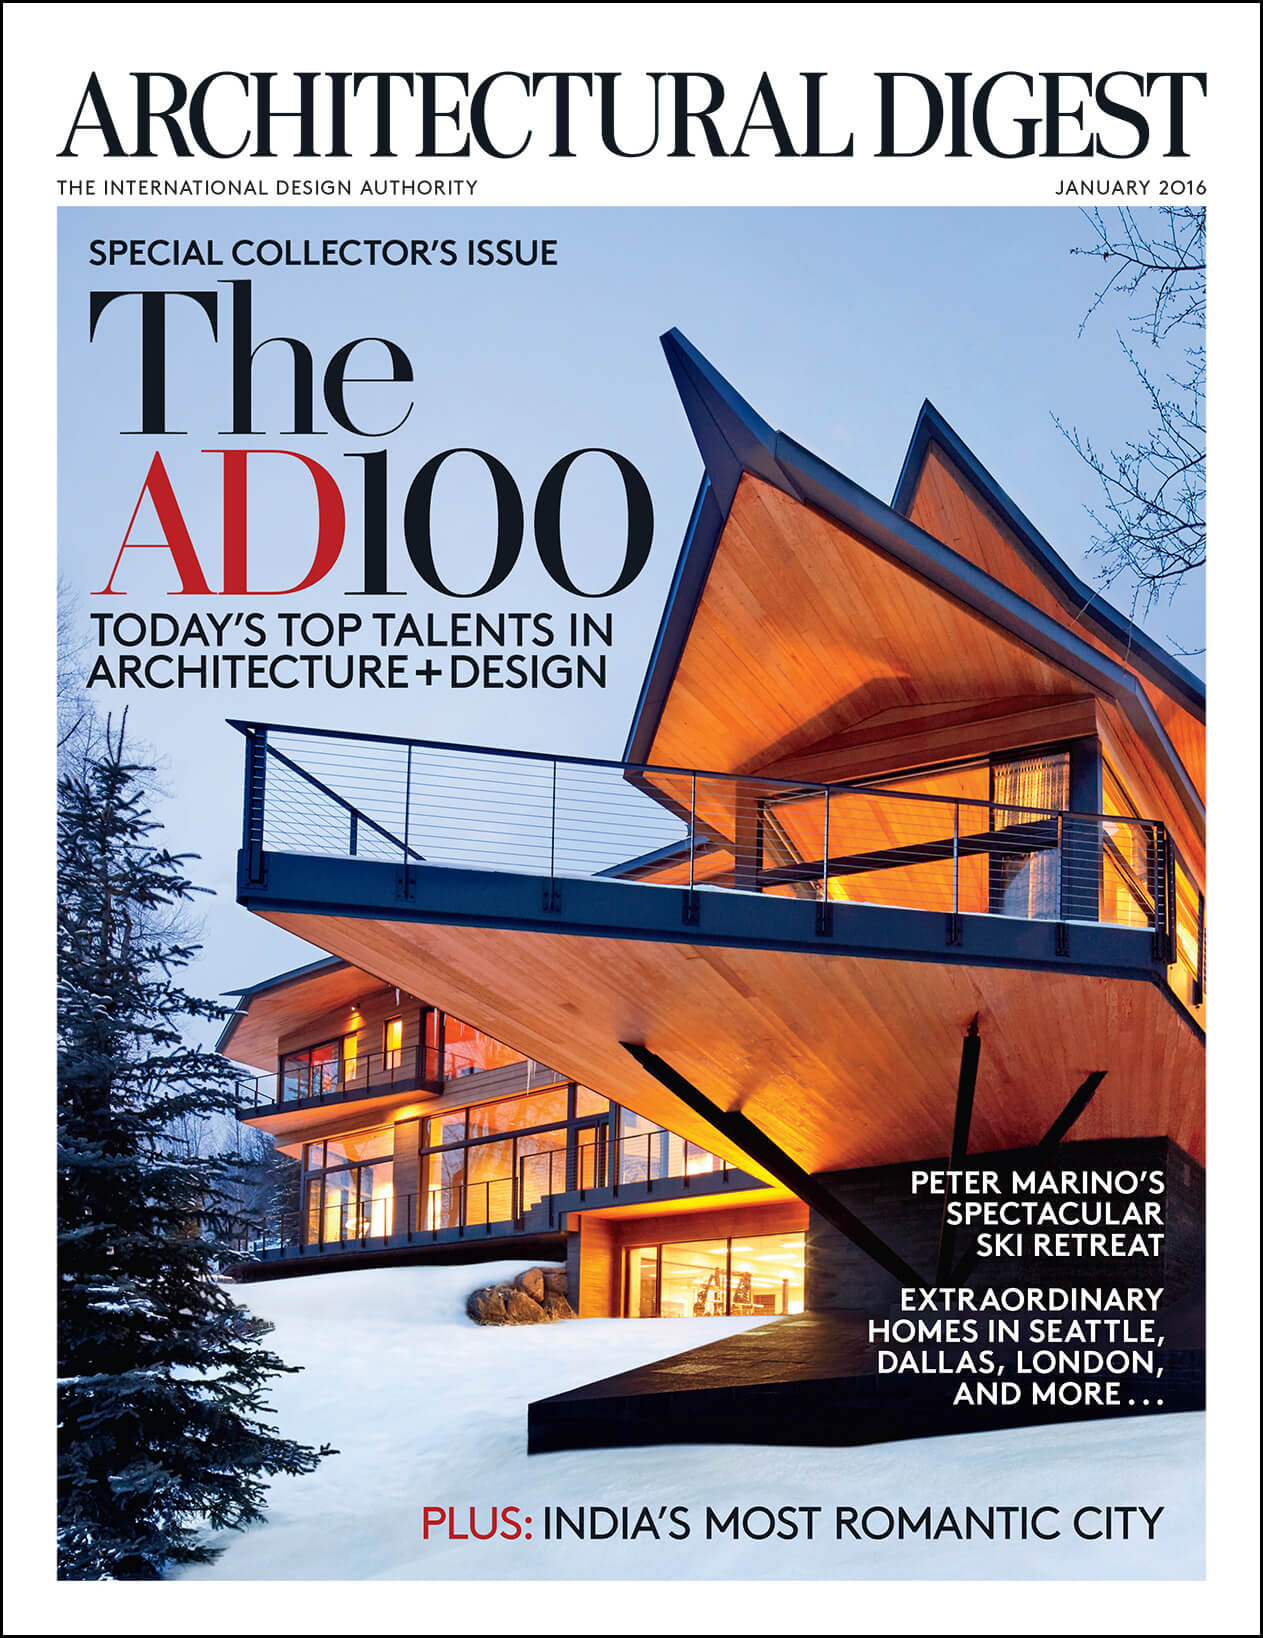 Suzanne rheinstein named to architectural digest 39 s 2016 ad100 internationally recognized for Architectural digest bathrooms 2016